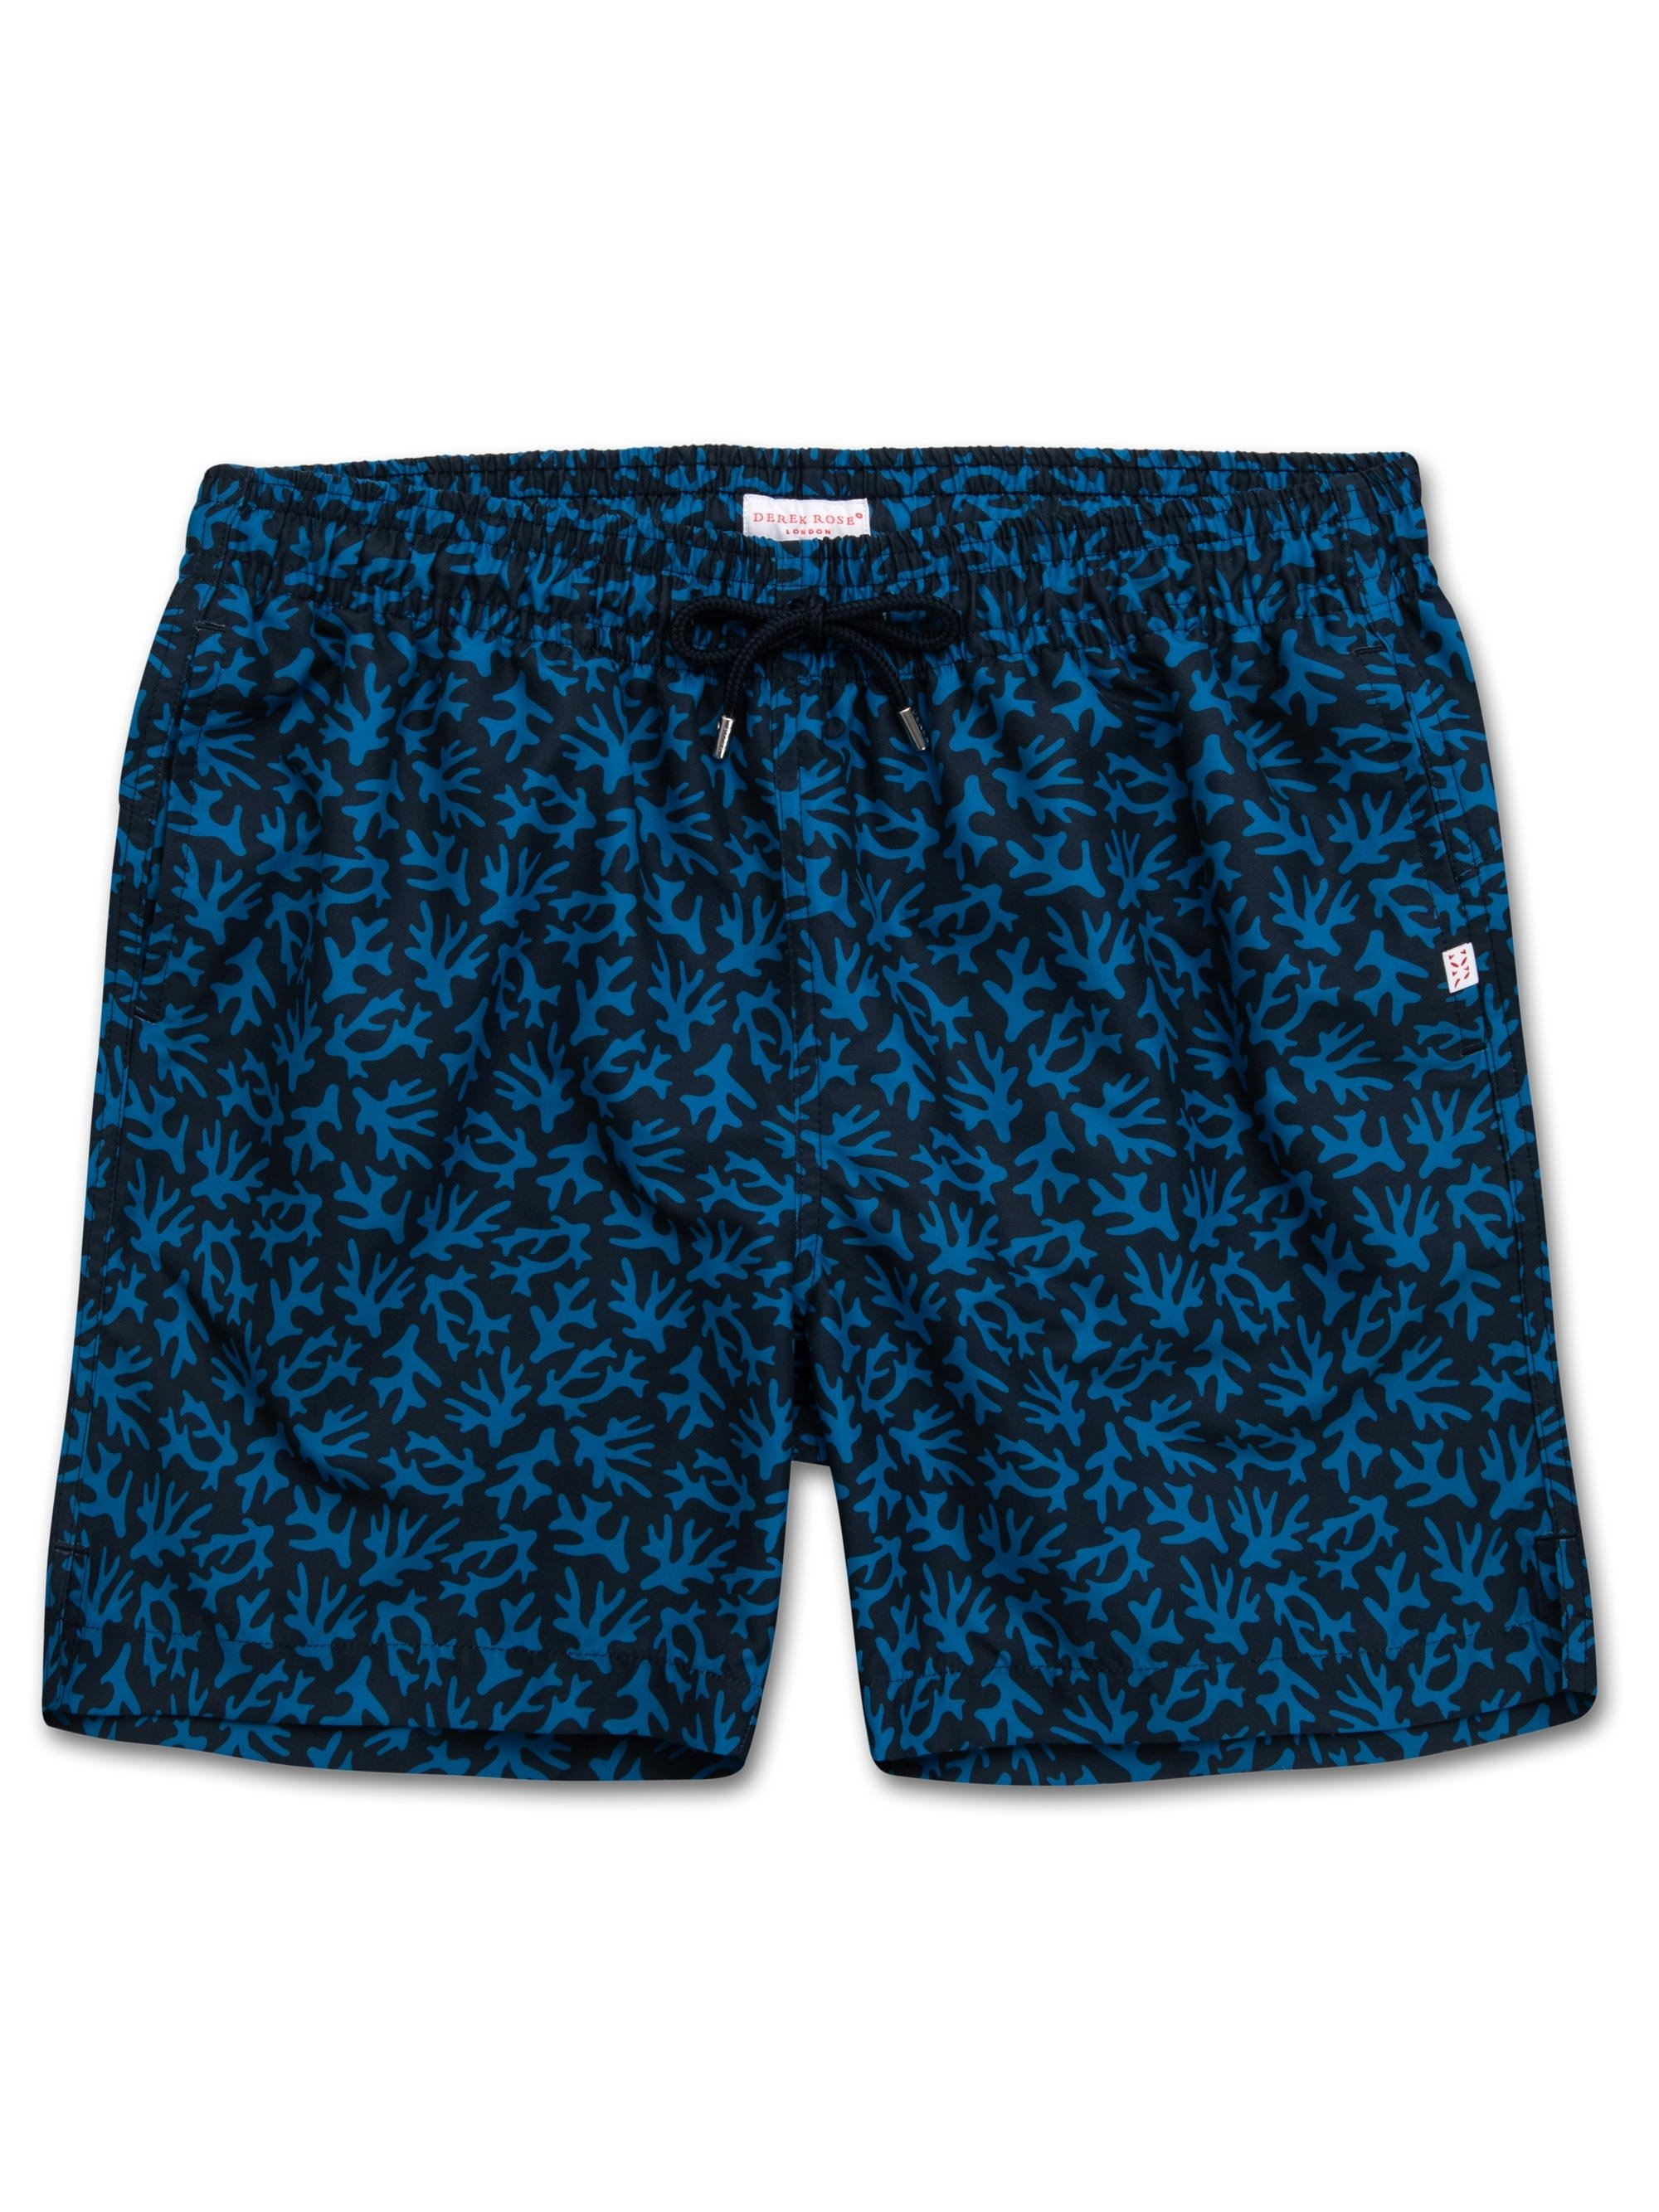 Men's Classic Fit Swim Shorts Maui 17 Ocean